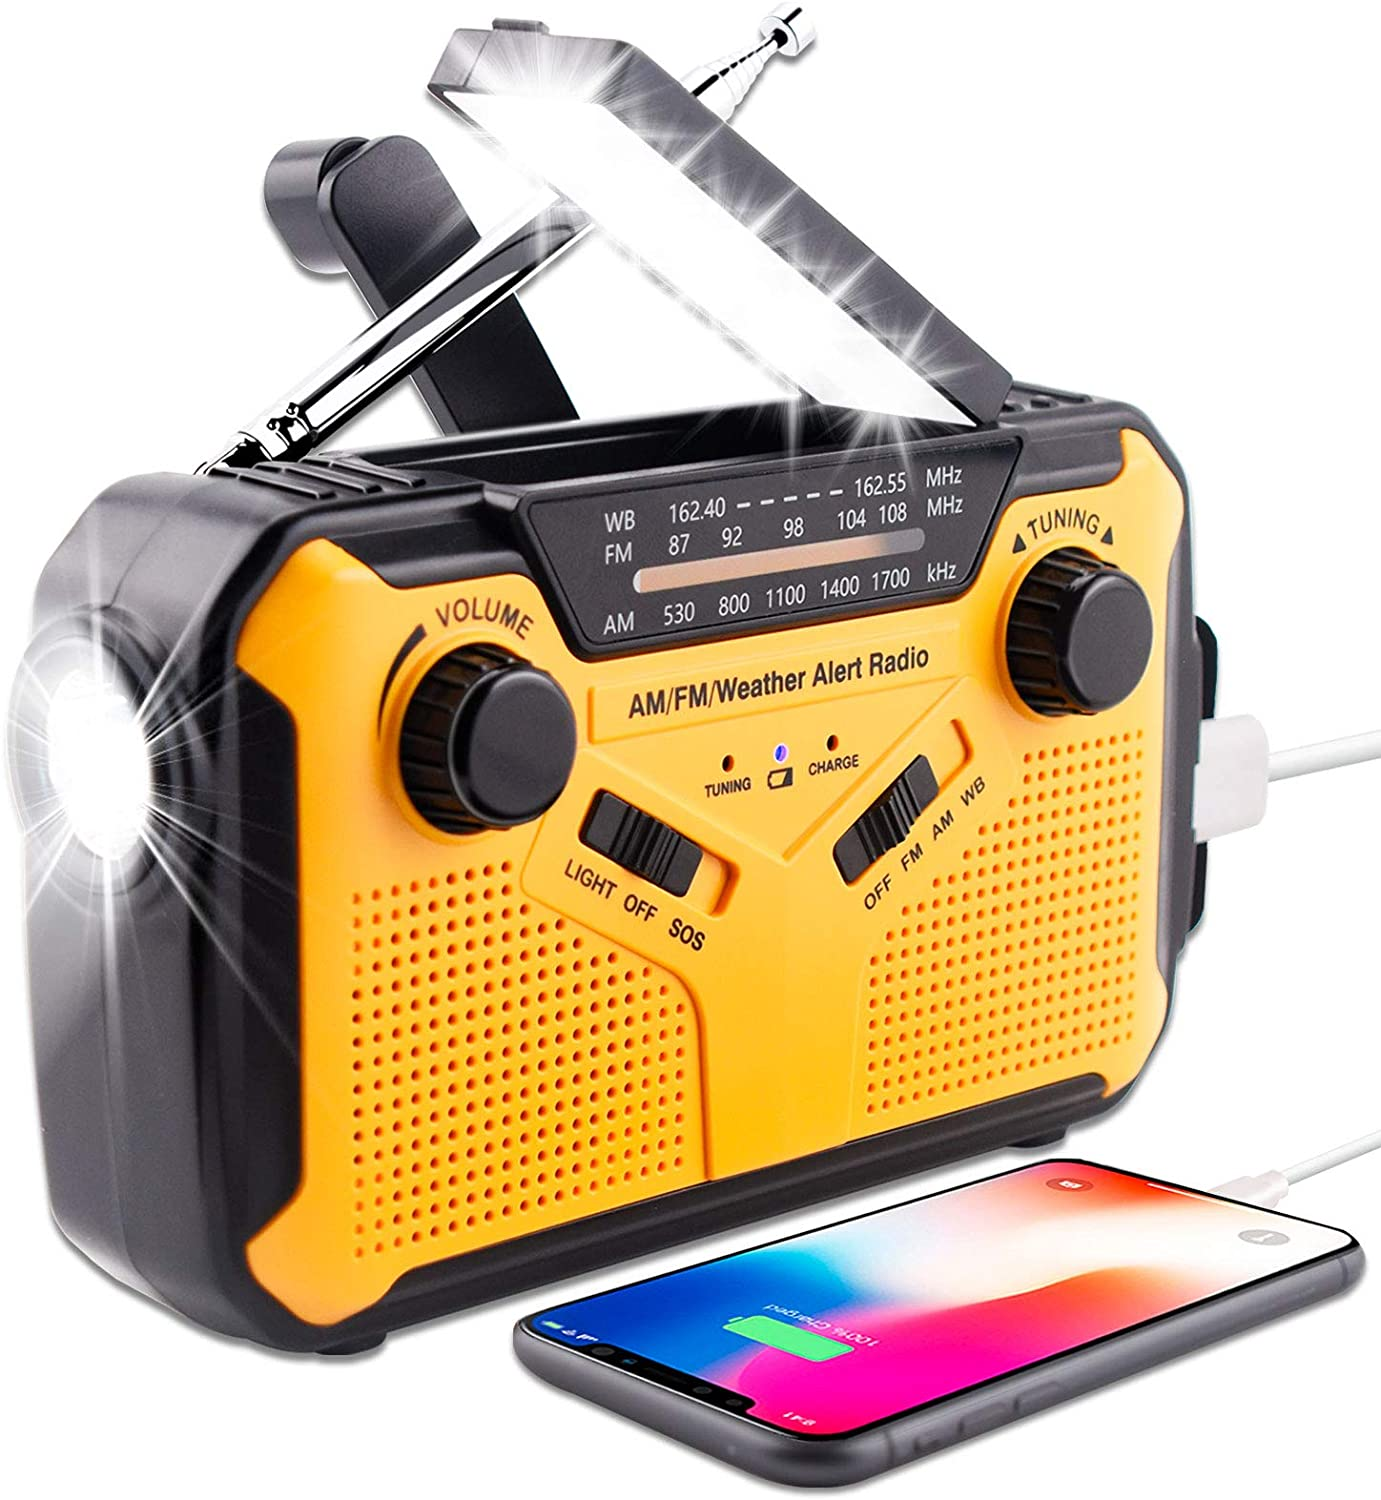 JACE Emergency Weather Radio, Portable Hand Crank Solar AM/FM/NOAA Weather Radio, With Phone Power USB Charger, 5 LED Reading Lamp, Flashlight And SOS Alarm, Suitable For Home And Emergency Situations